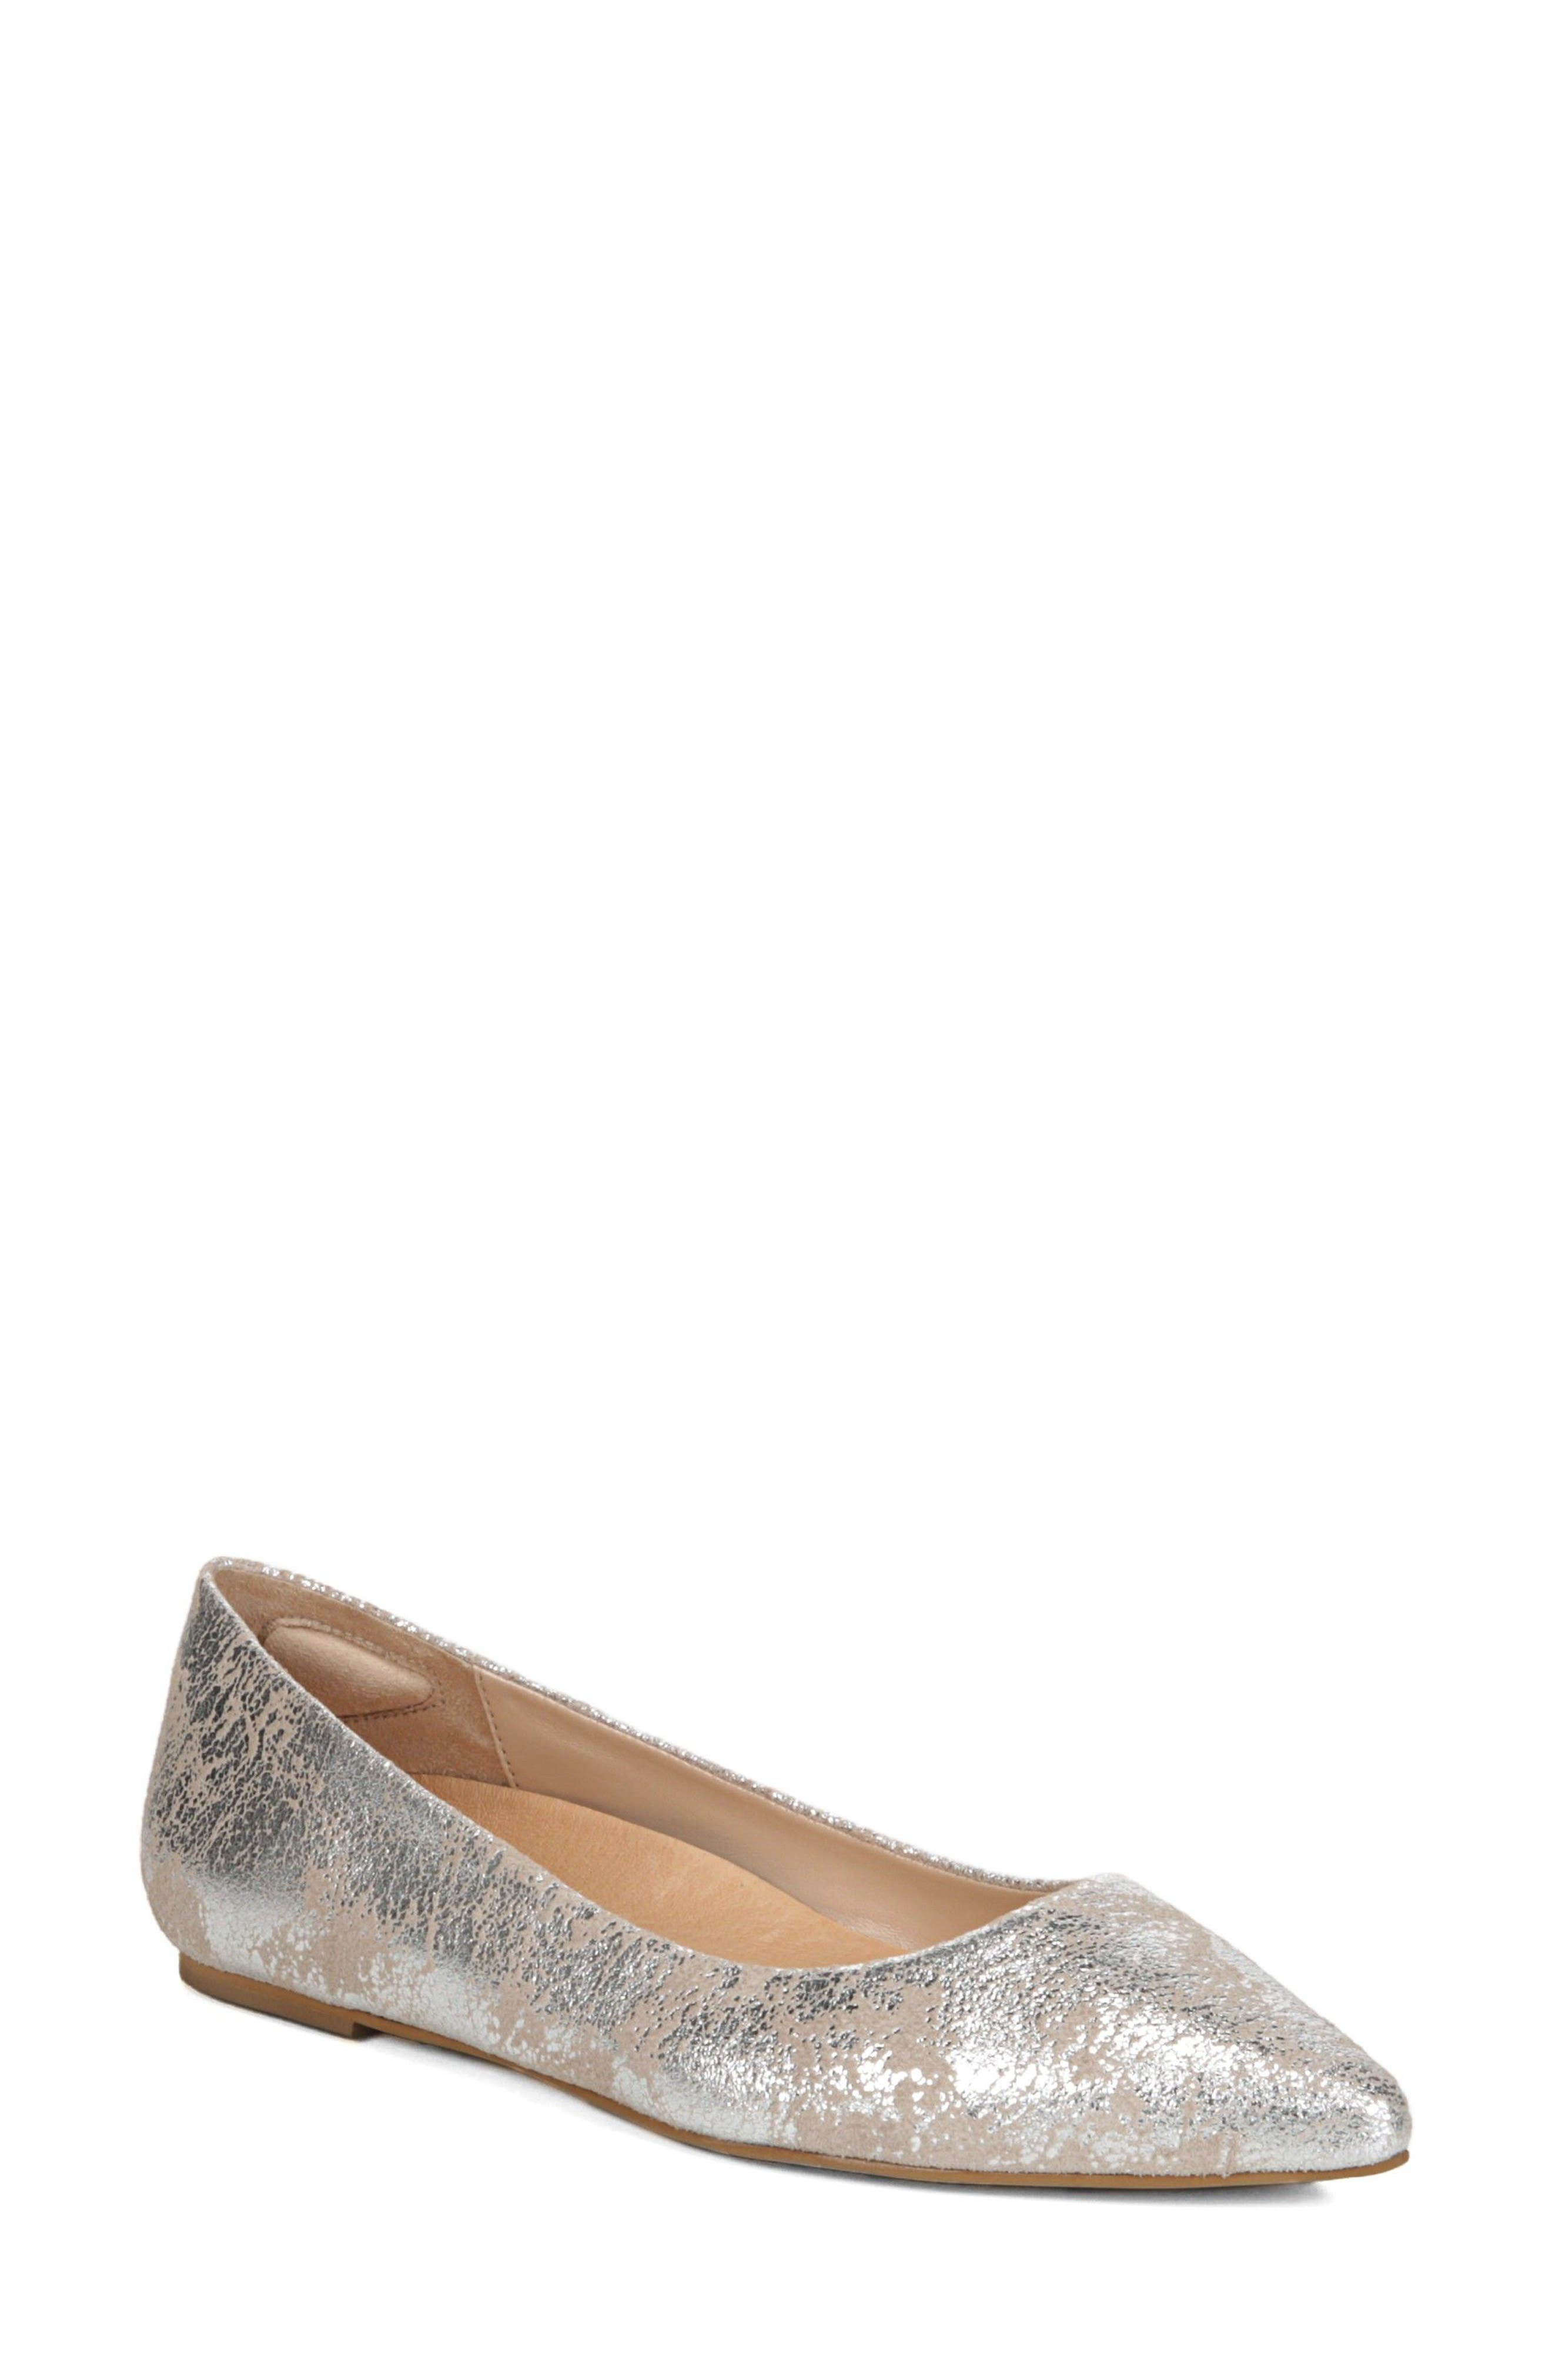 DR. SCHOLL'S Original Collection Kimber Flat, Main, color, PEWTER LEATHER